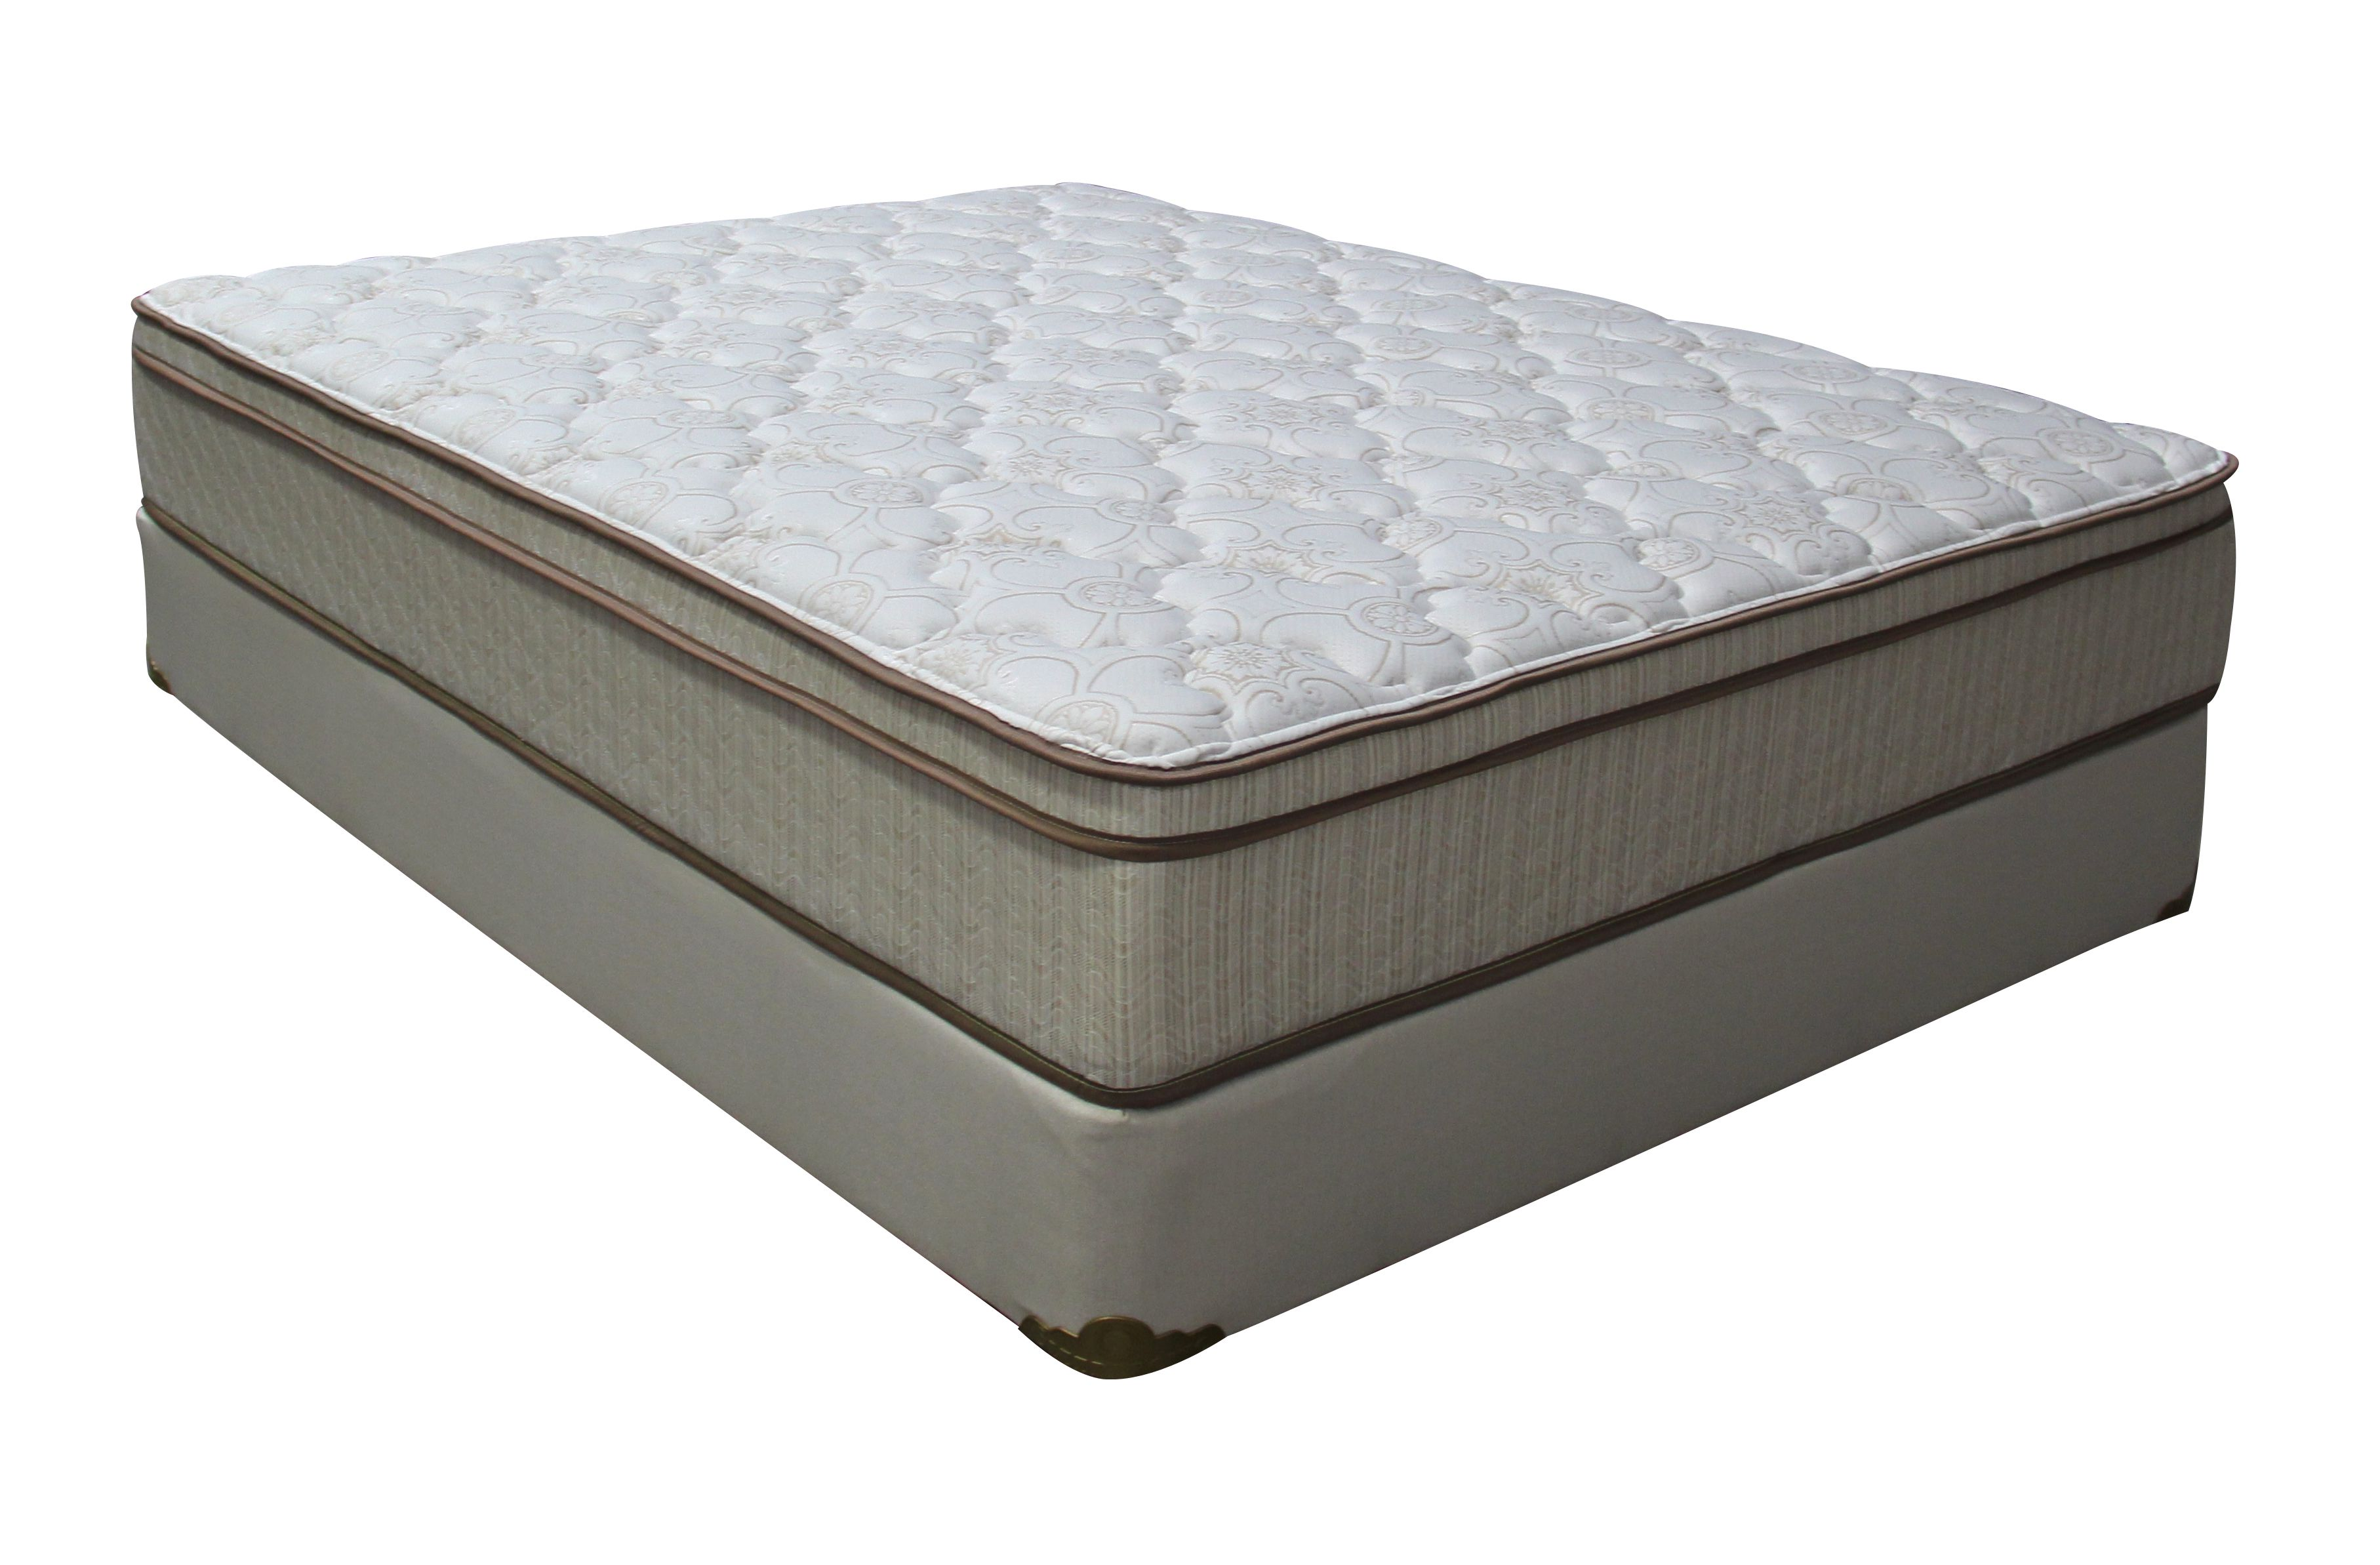 f luxury products full set restonic fmg select firm kingston item comfortcare luxfirm mattress